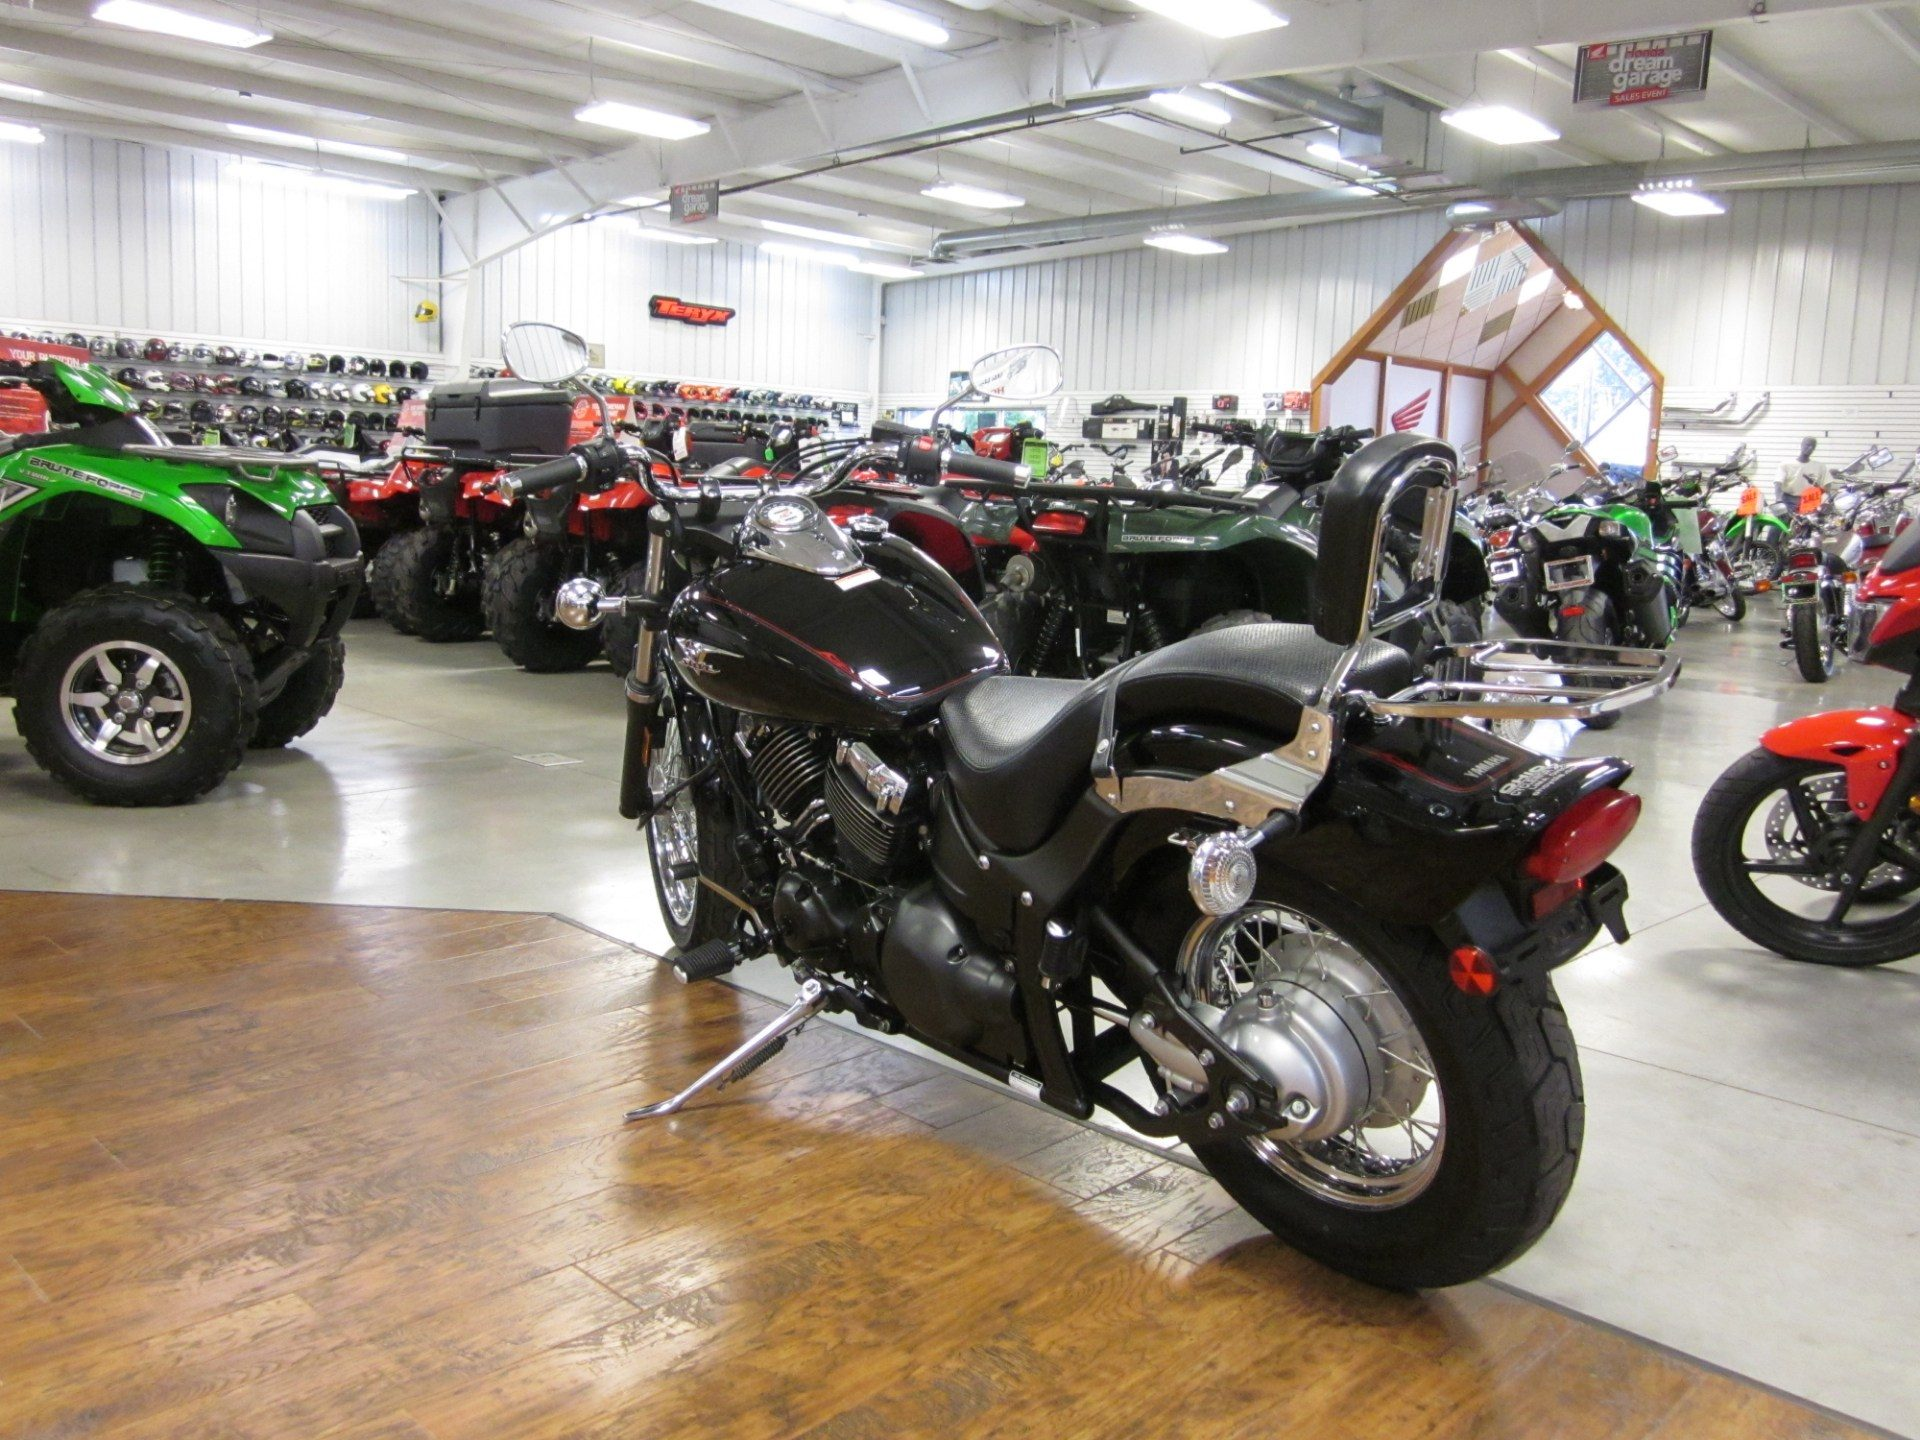 Used 2007 yamaha v star 650 motorcycles in lima oh for Yamaha dealers in my area